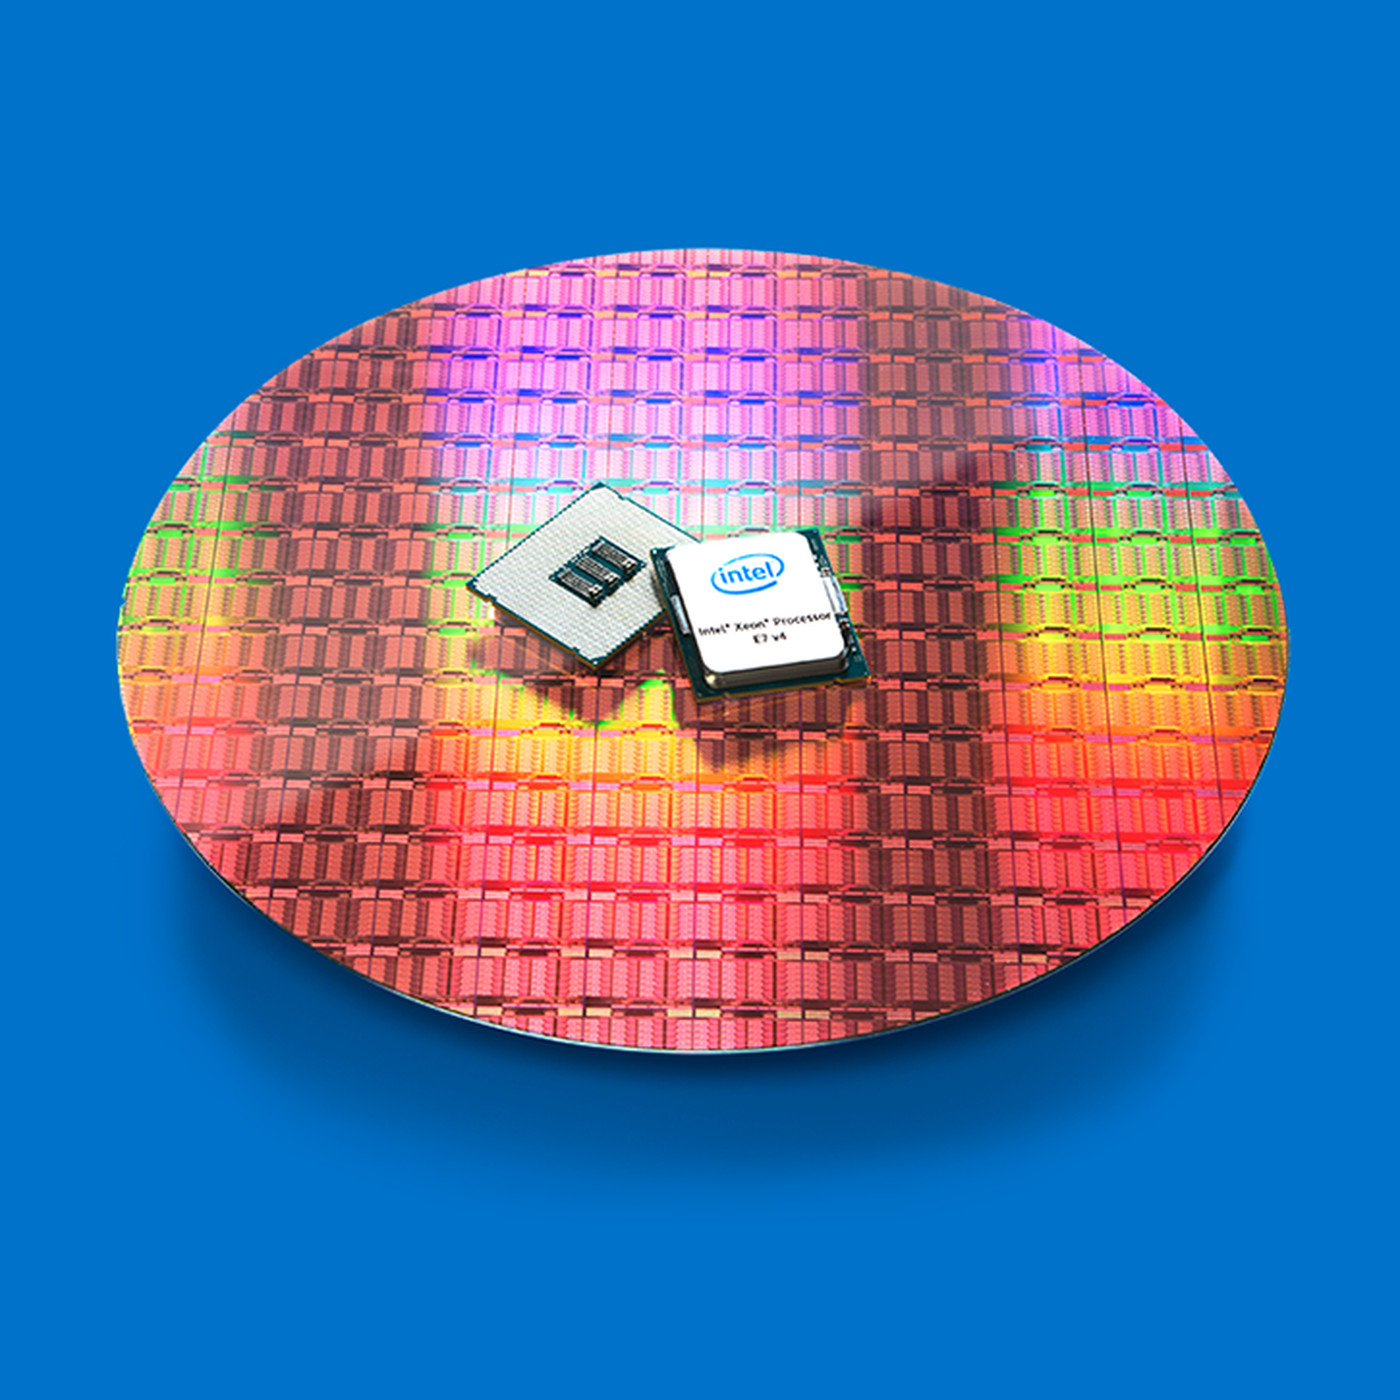 Intel's new processor costs almost $9,000 and will make your server